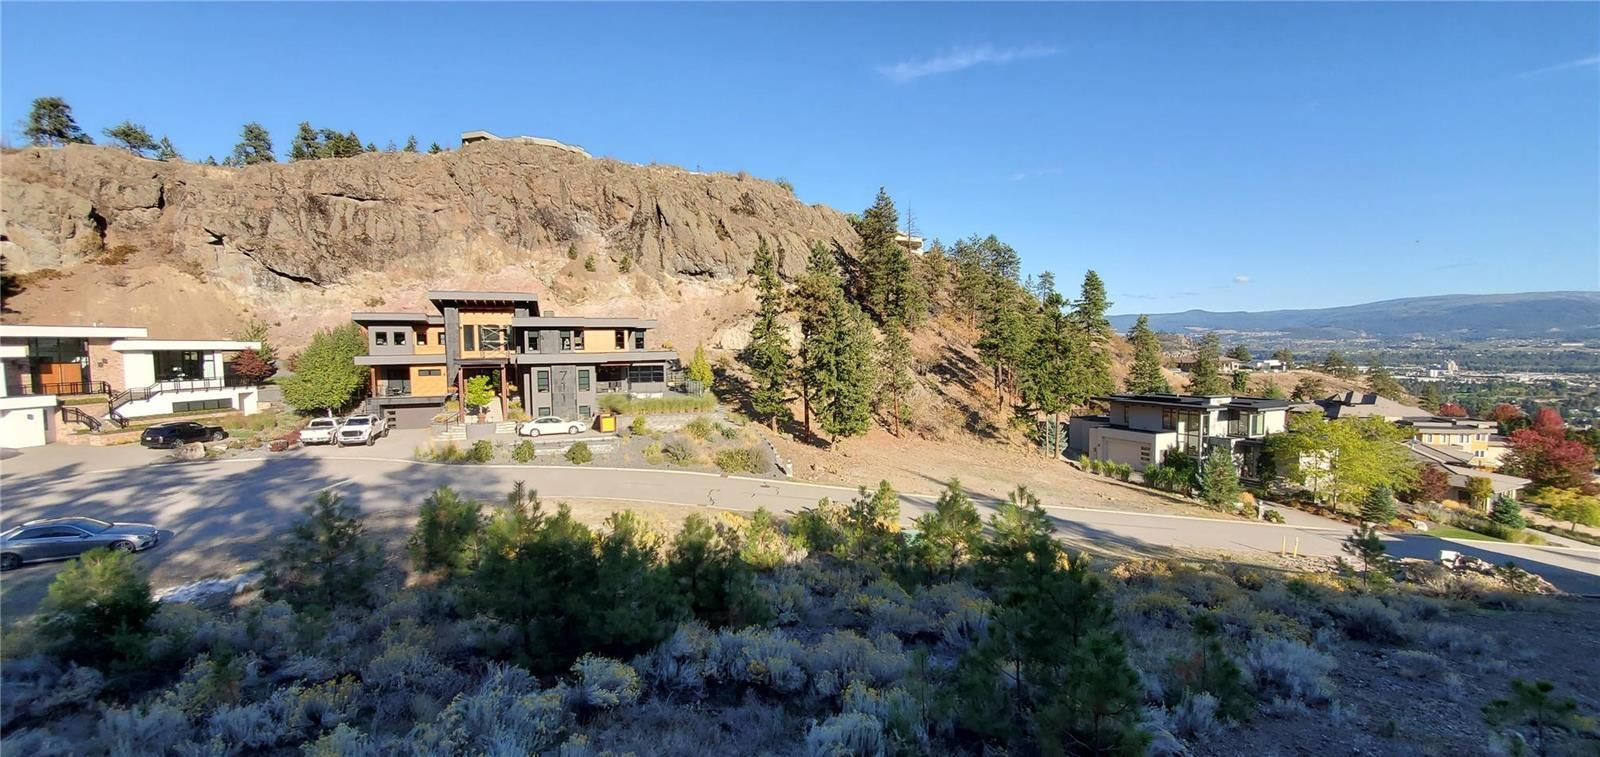 Main Photo: 720 Pinehaven Court, in Kelowna: Vacant Land for sale : MLS®# 10241109